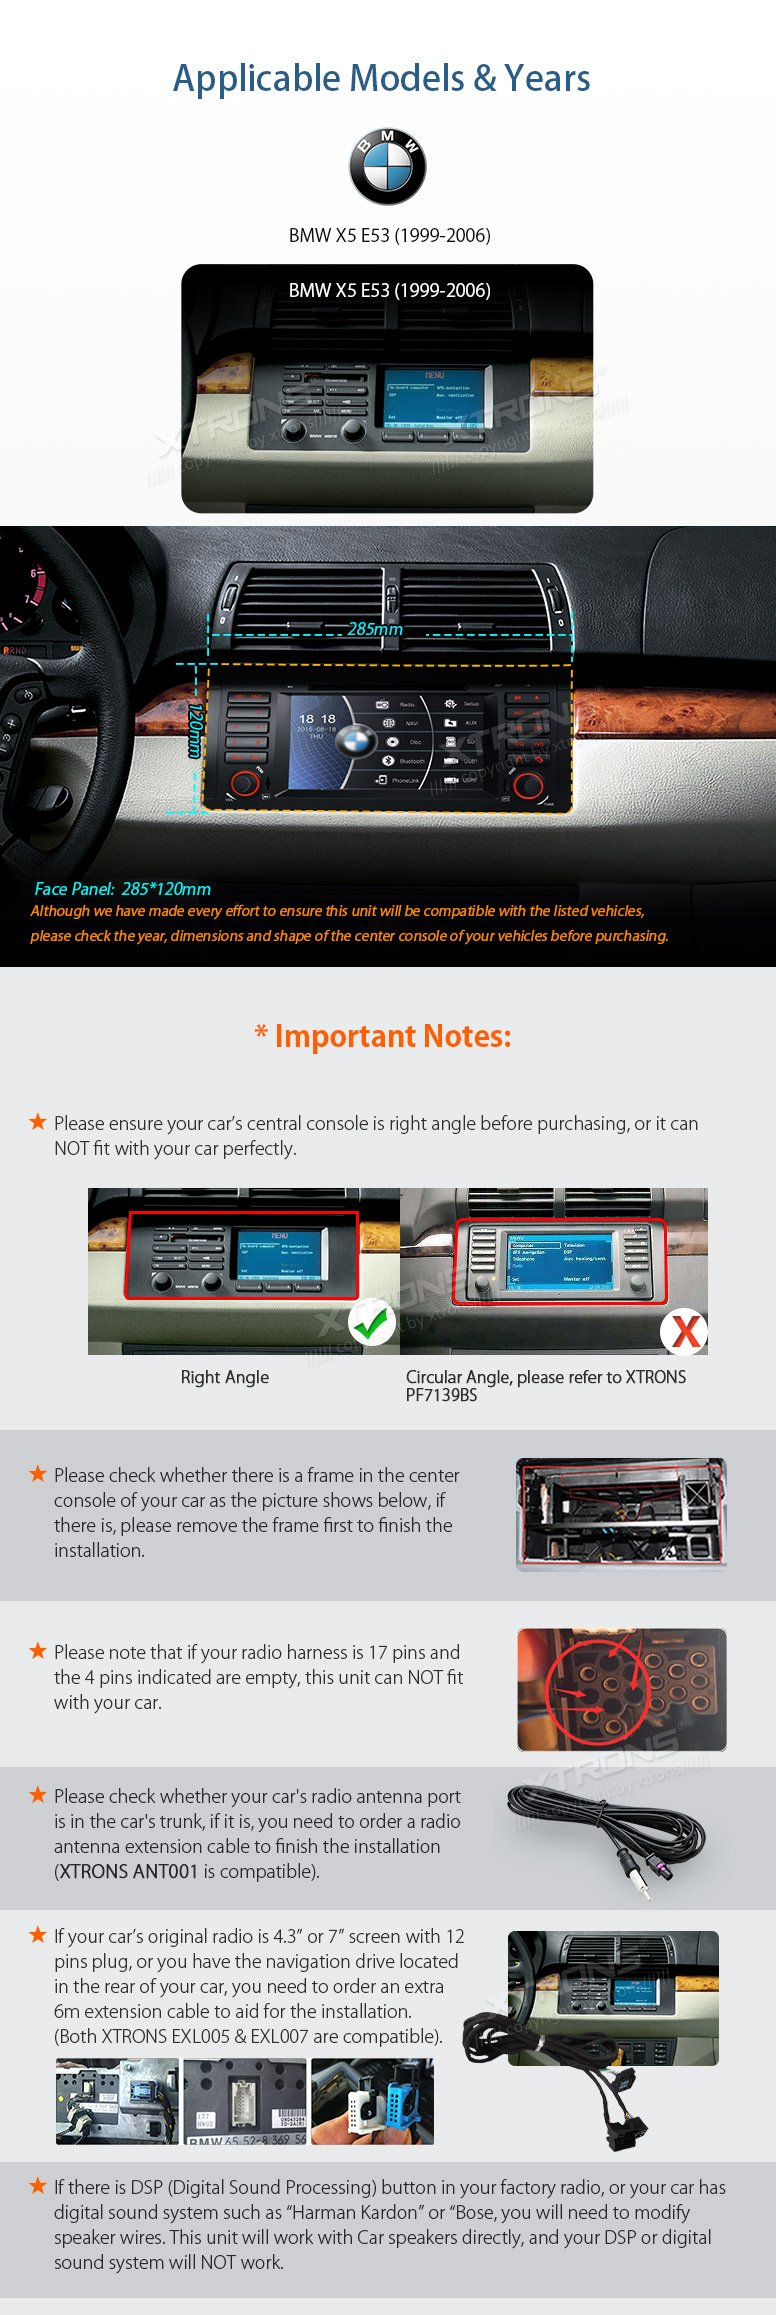 XTRONS 7 Inch HD Digital Touch Screen Car Stereo Radio In-Dash DVD Player with GPS CANbus Screen Mirroring Function for BMW E53 X5 Navigation Map Card & Reversing Camera Included by XTRONS (Image #3)